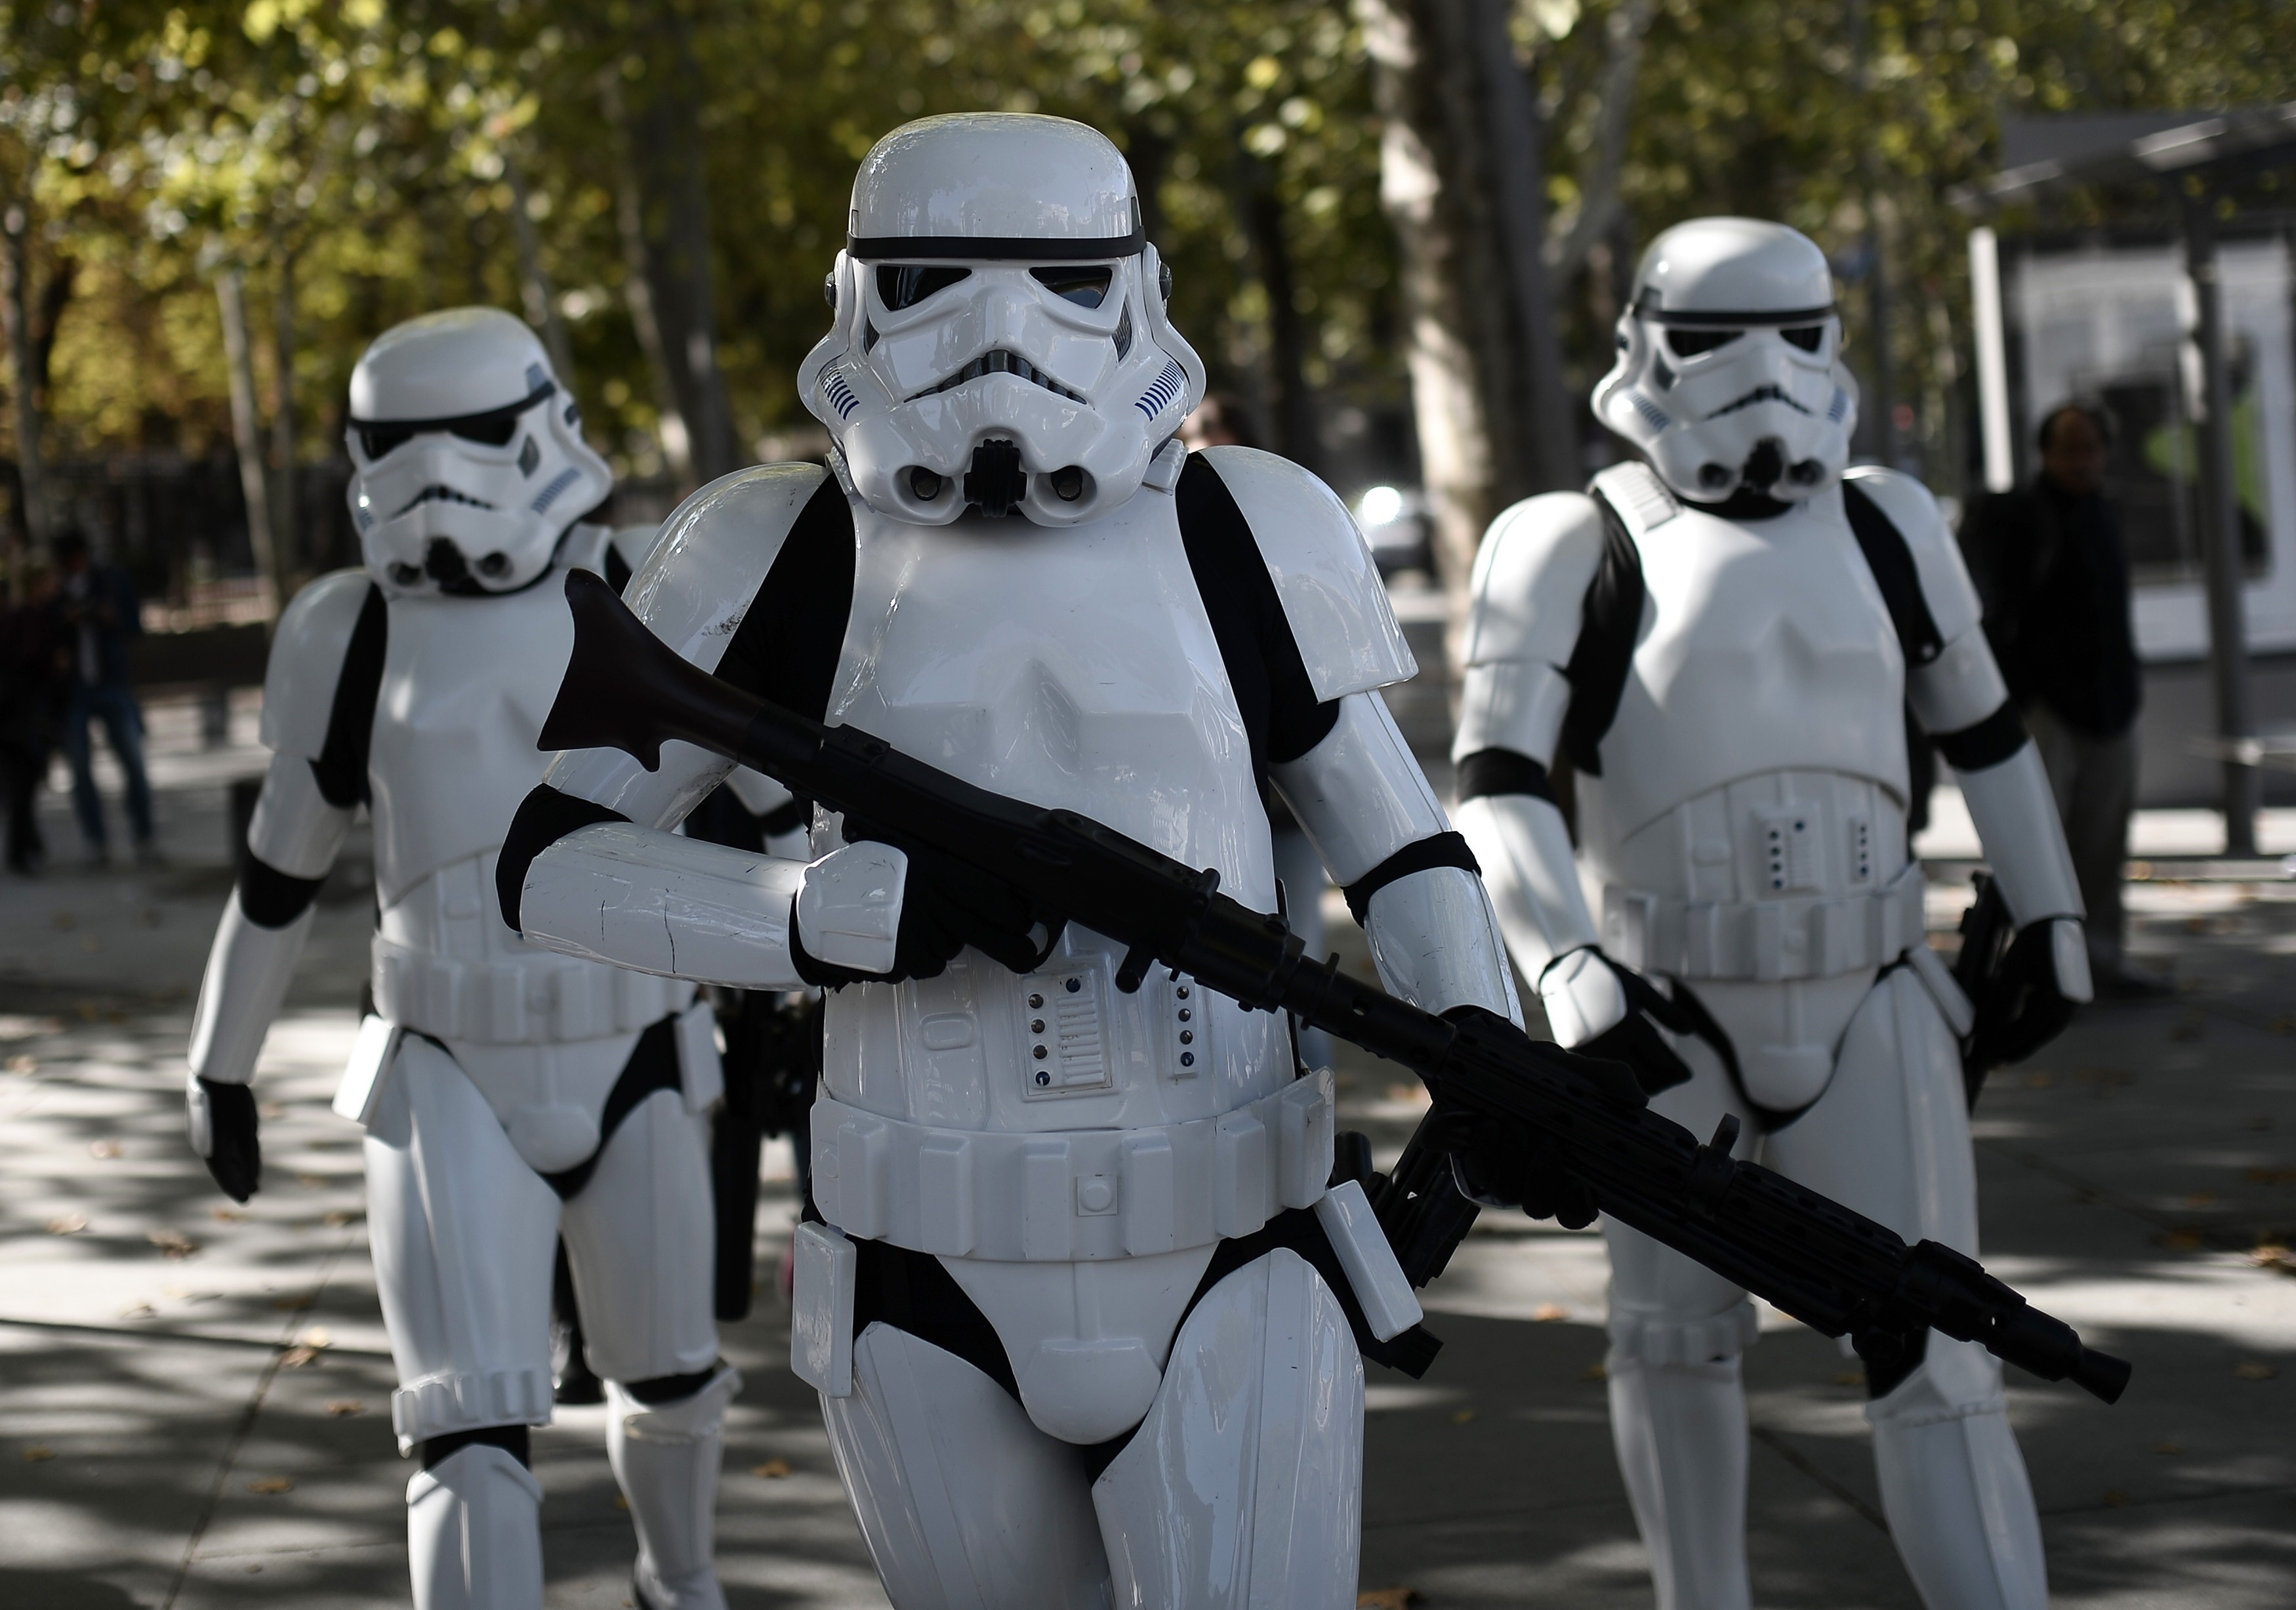 Star Wars' stormtrooper characters walk on Oct. 30 in Madrid.